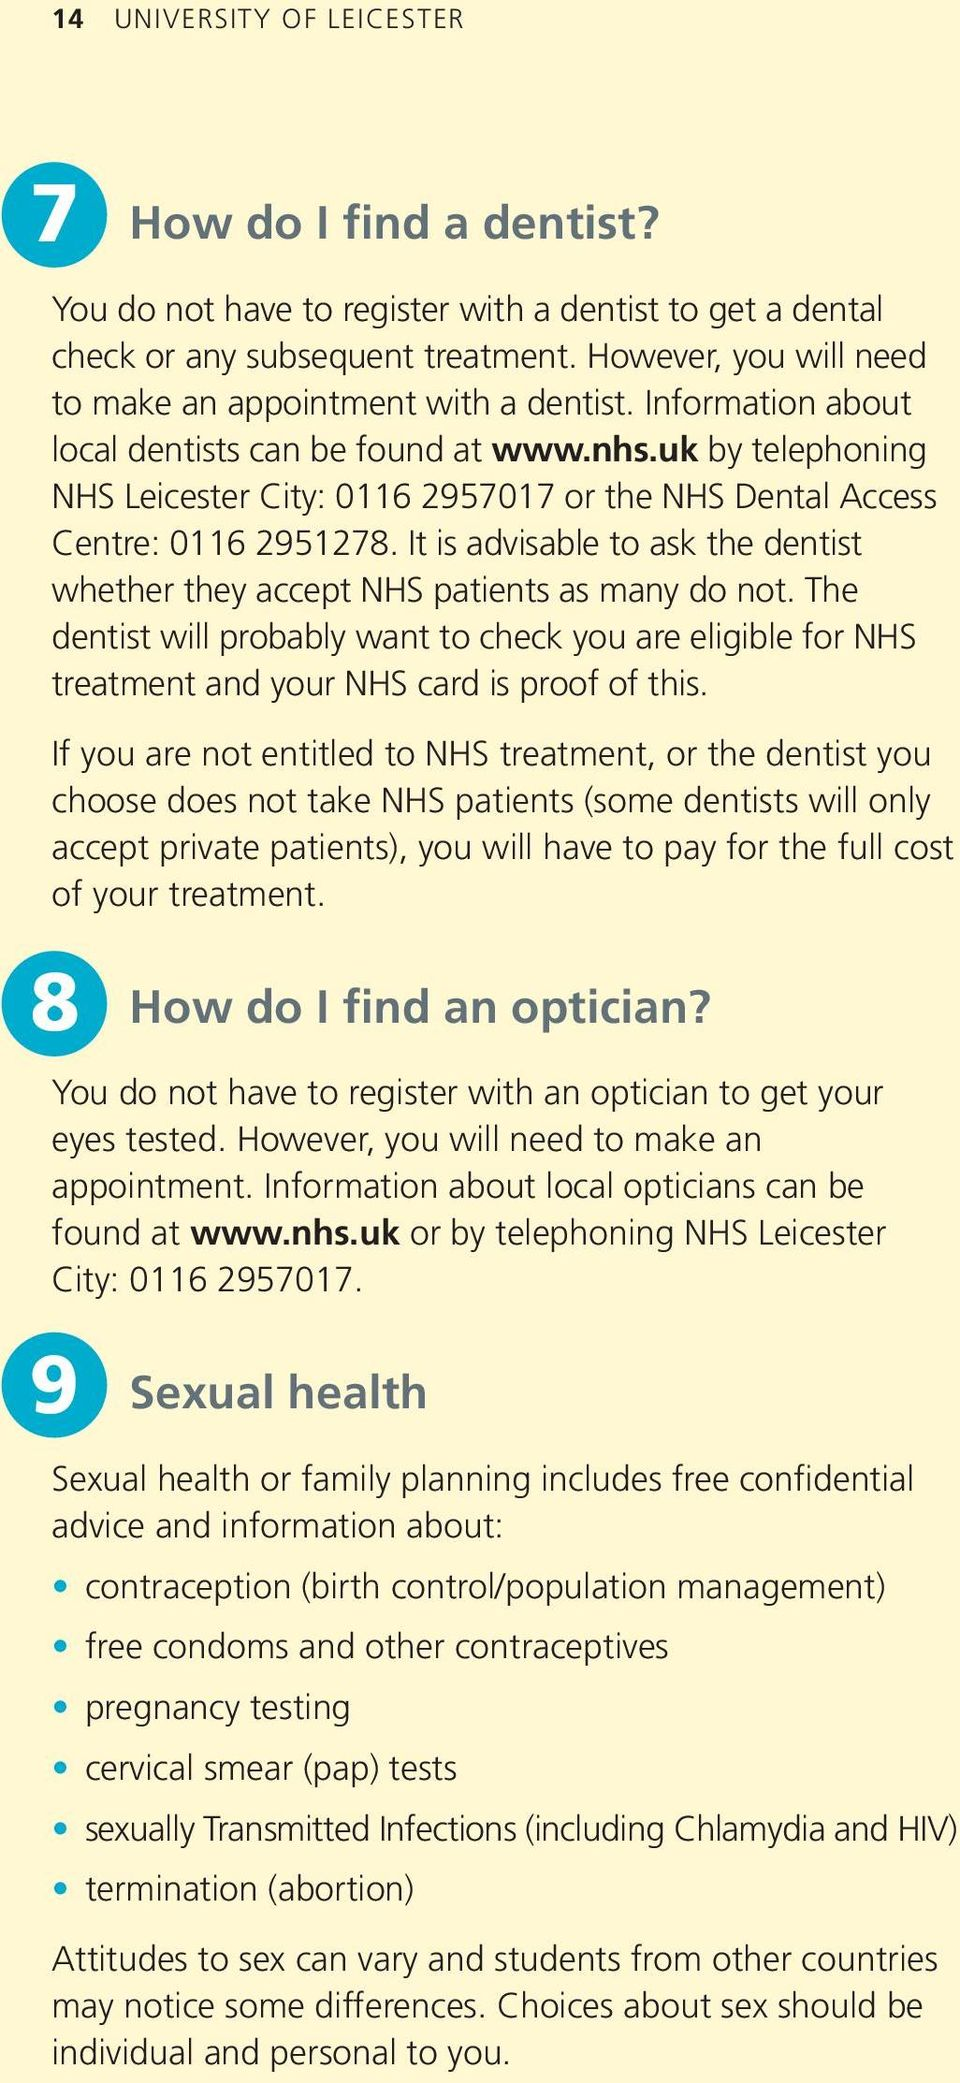 uk by telephoning NHS Leicester City: 0116 2957017 or the NHS Dental Access Centre: 0116 2951278. It is advisable to ask the dentist whether they accept NHS patients as many do not.